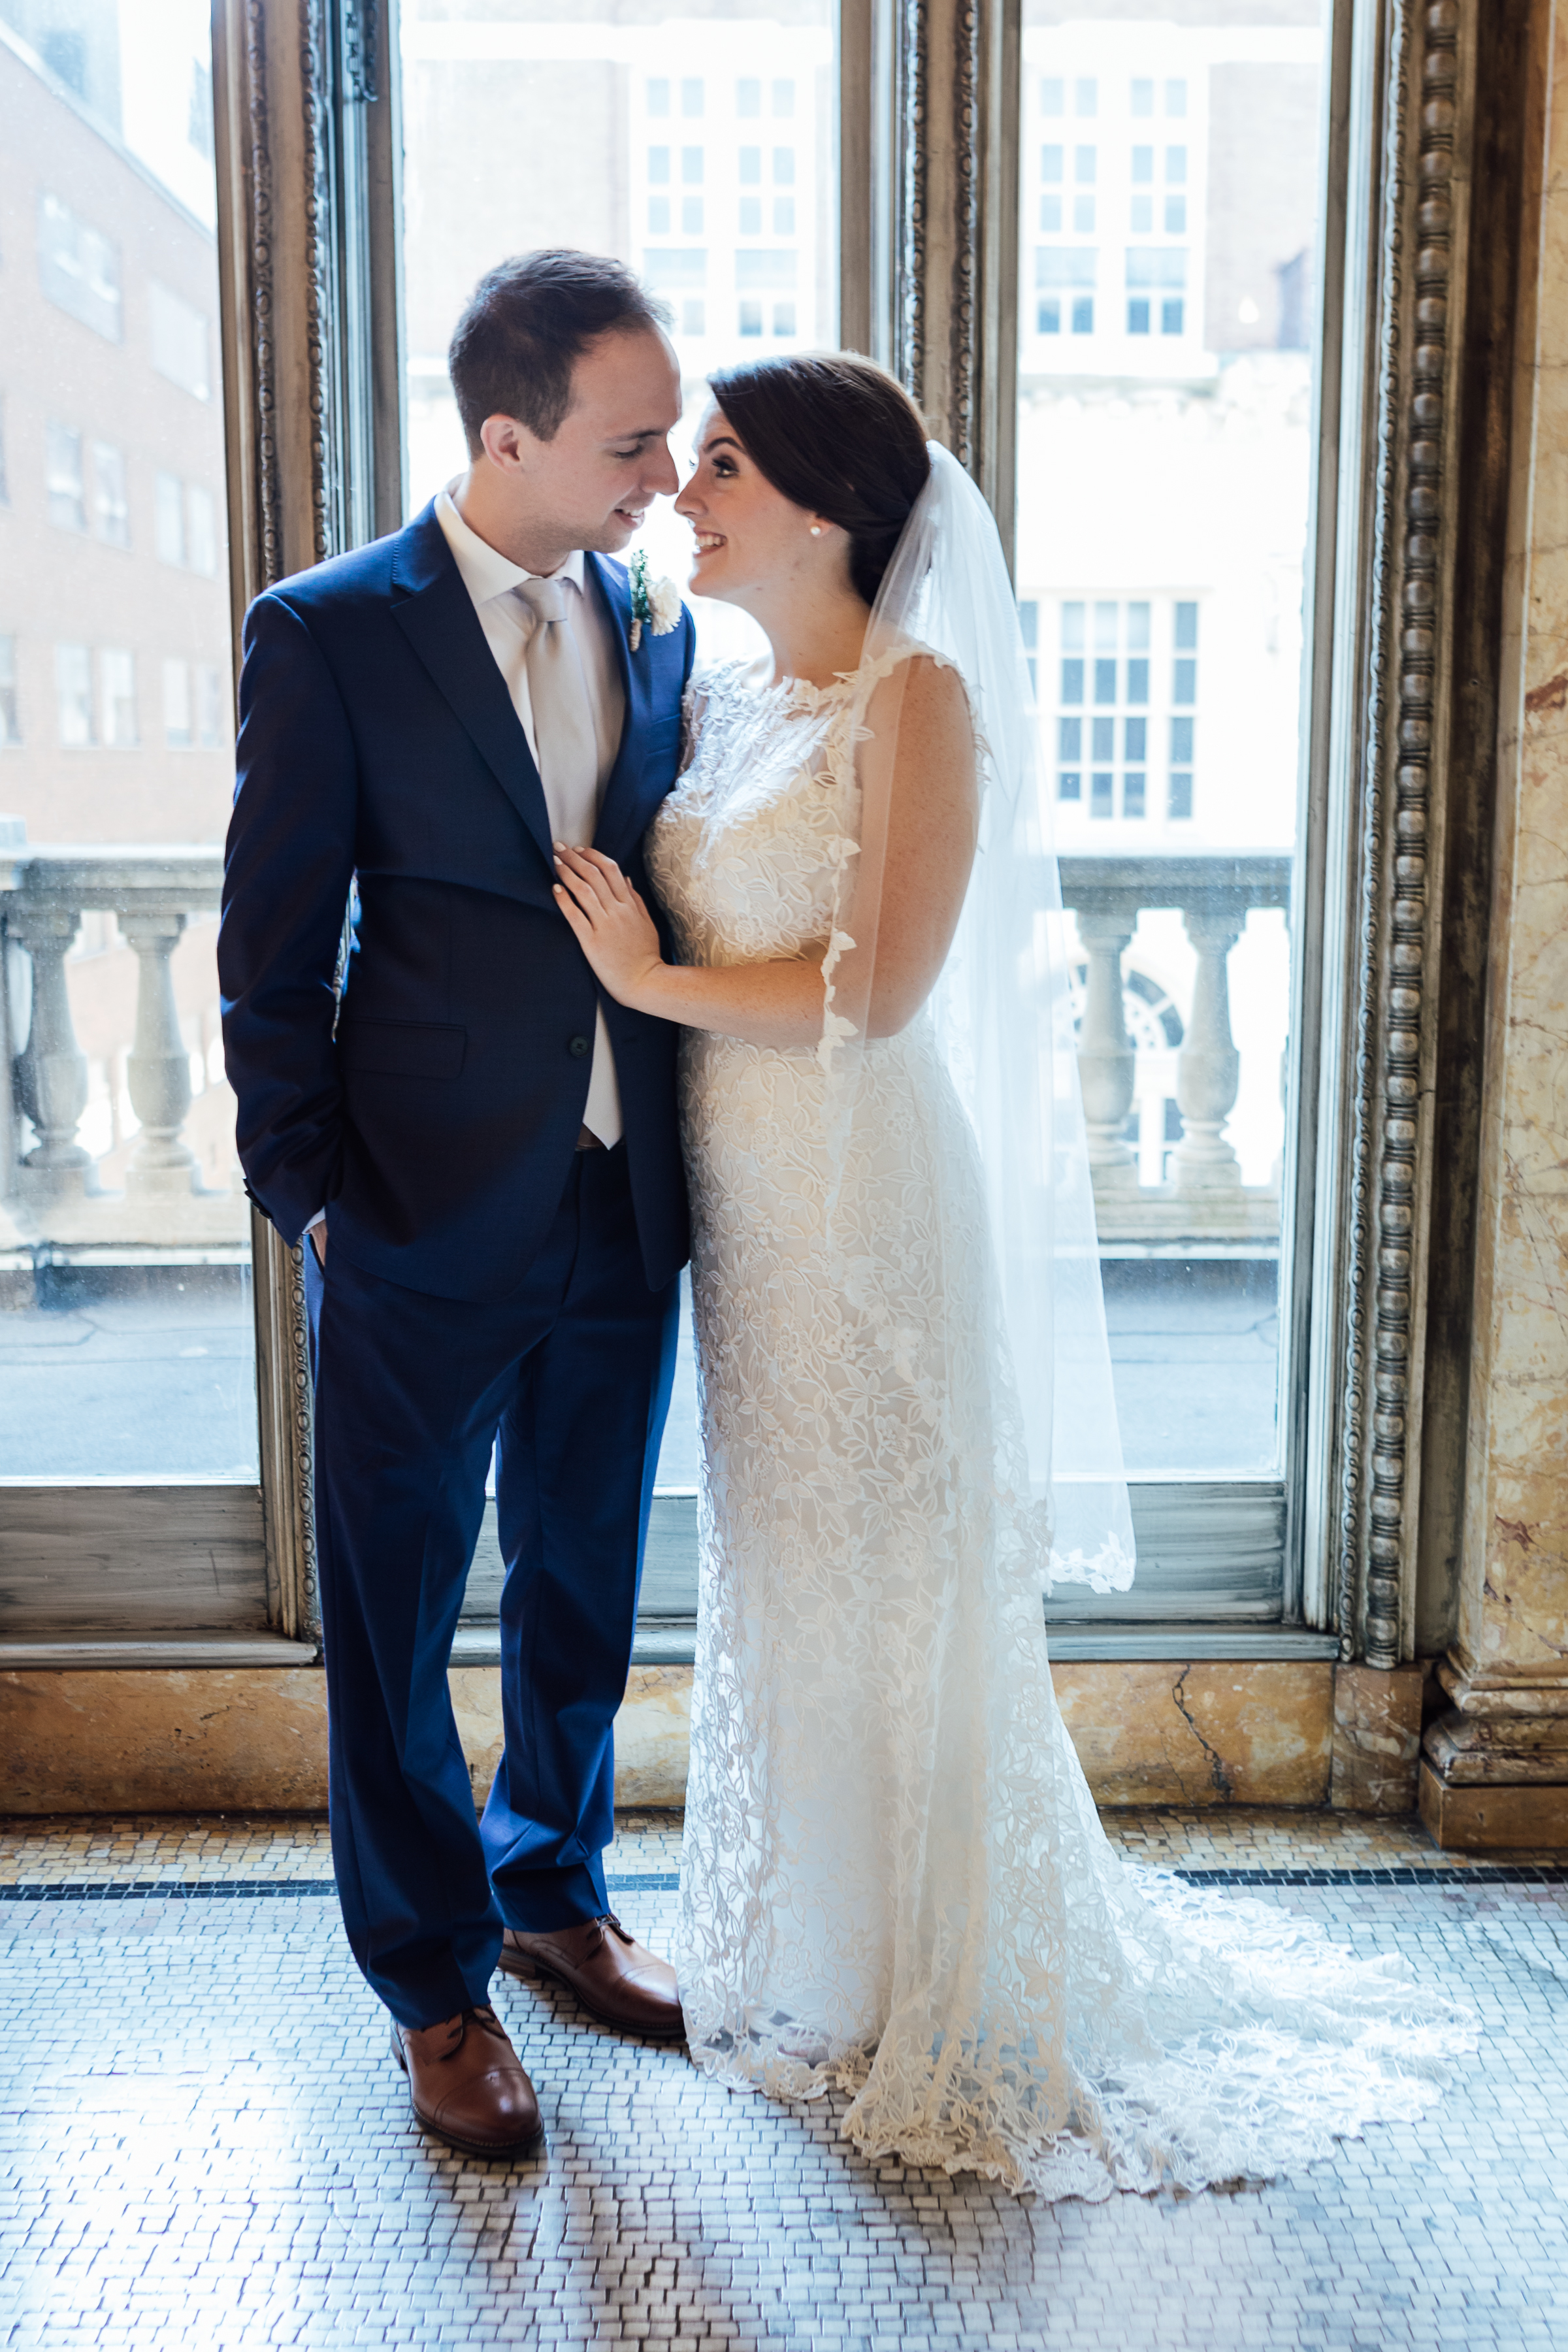 Bride and groom. Bride wears lace sheath dress and a tulle, lace-trimmed veil.